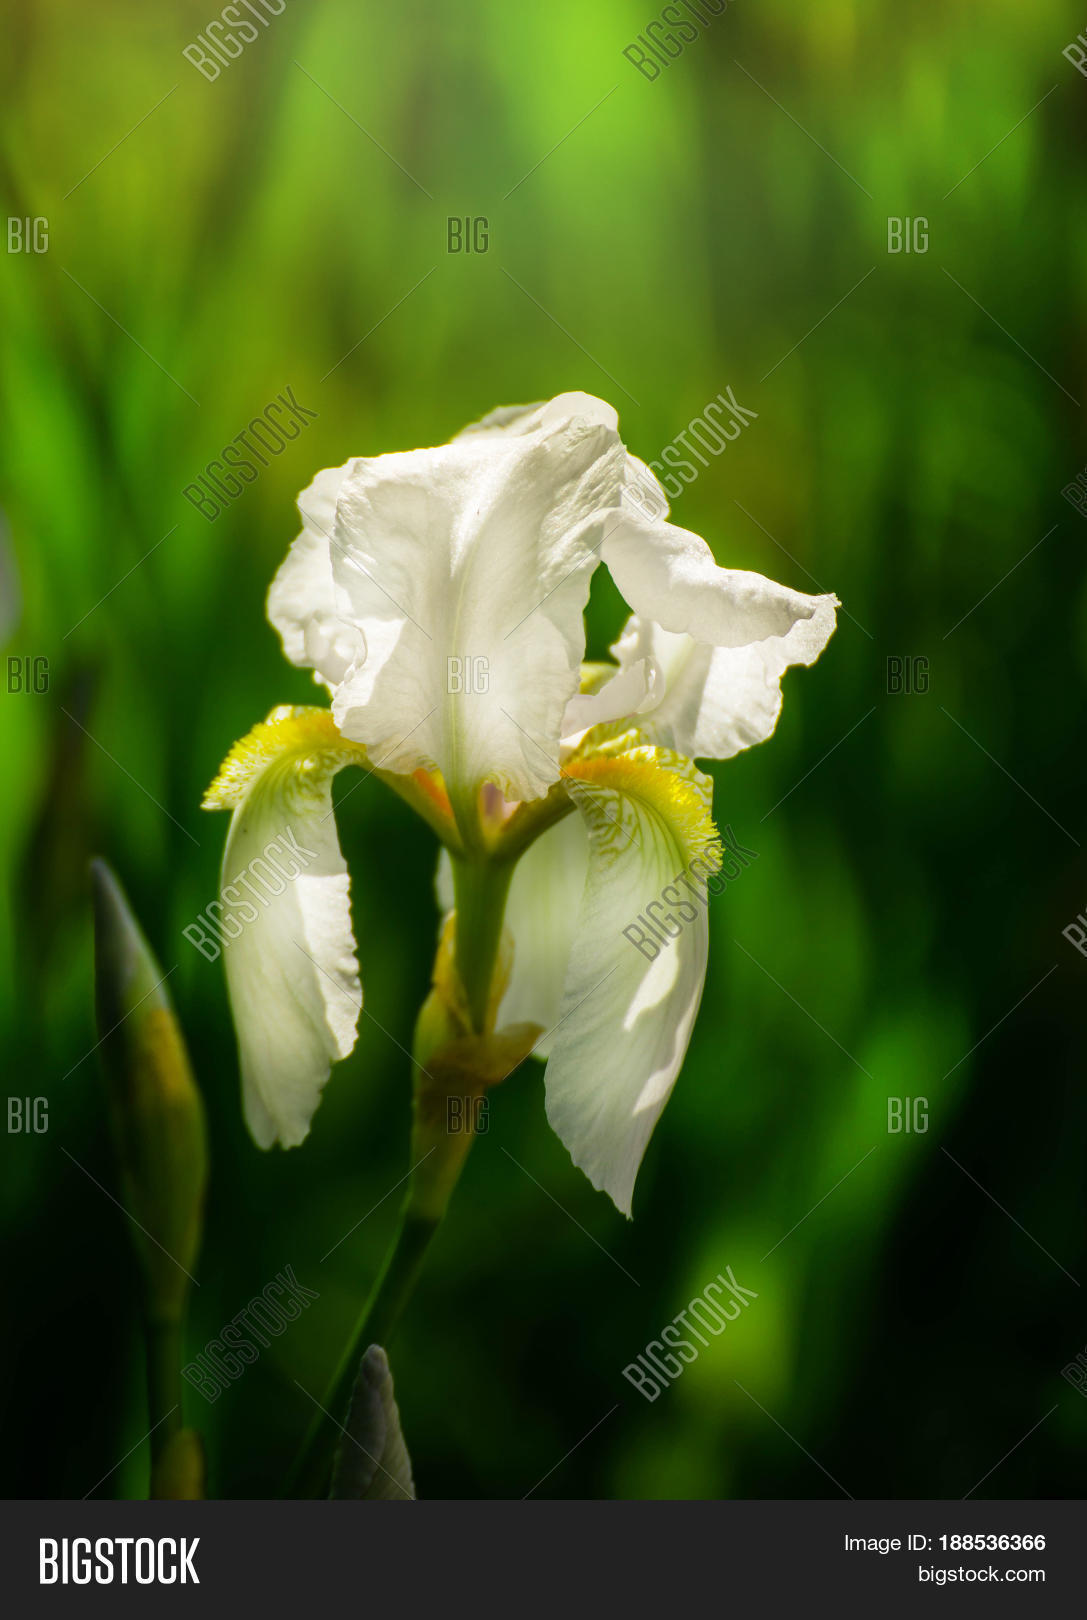 Beautiful flowers image photo free trial bigstock beautiful flowers of white iris beautiful irises on green background a white iris plant izmirmasajfo